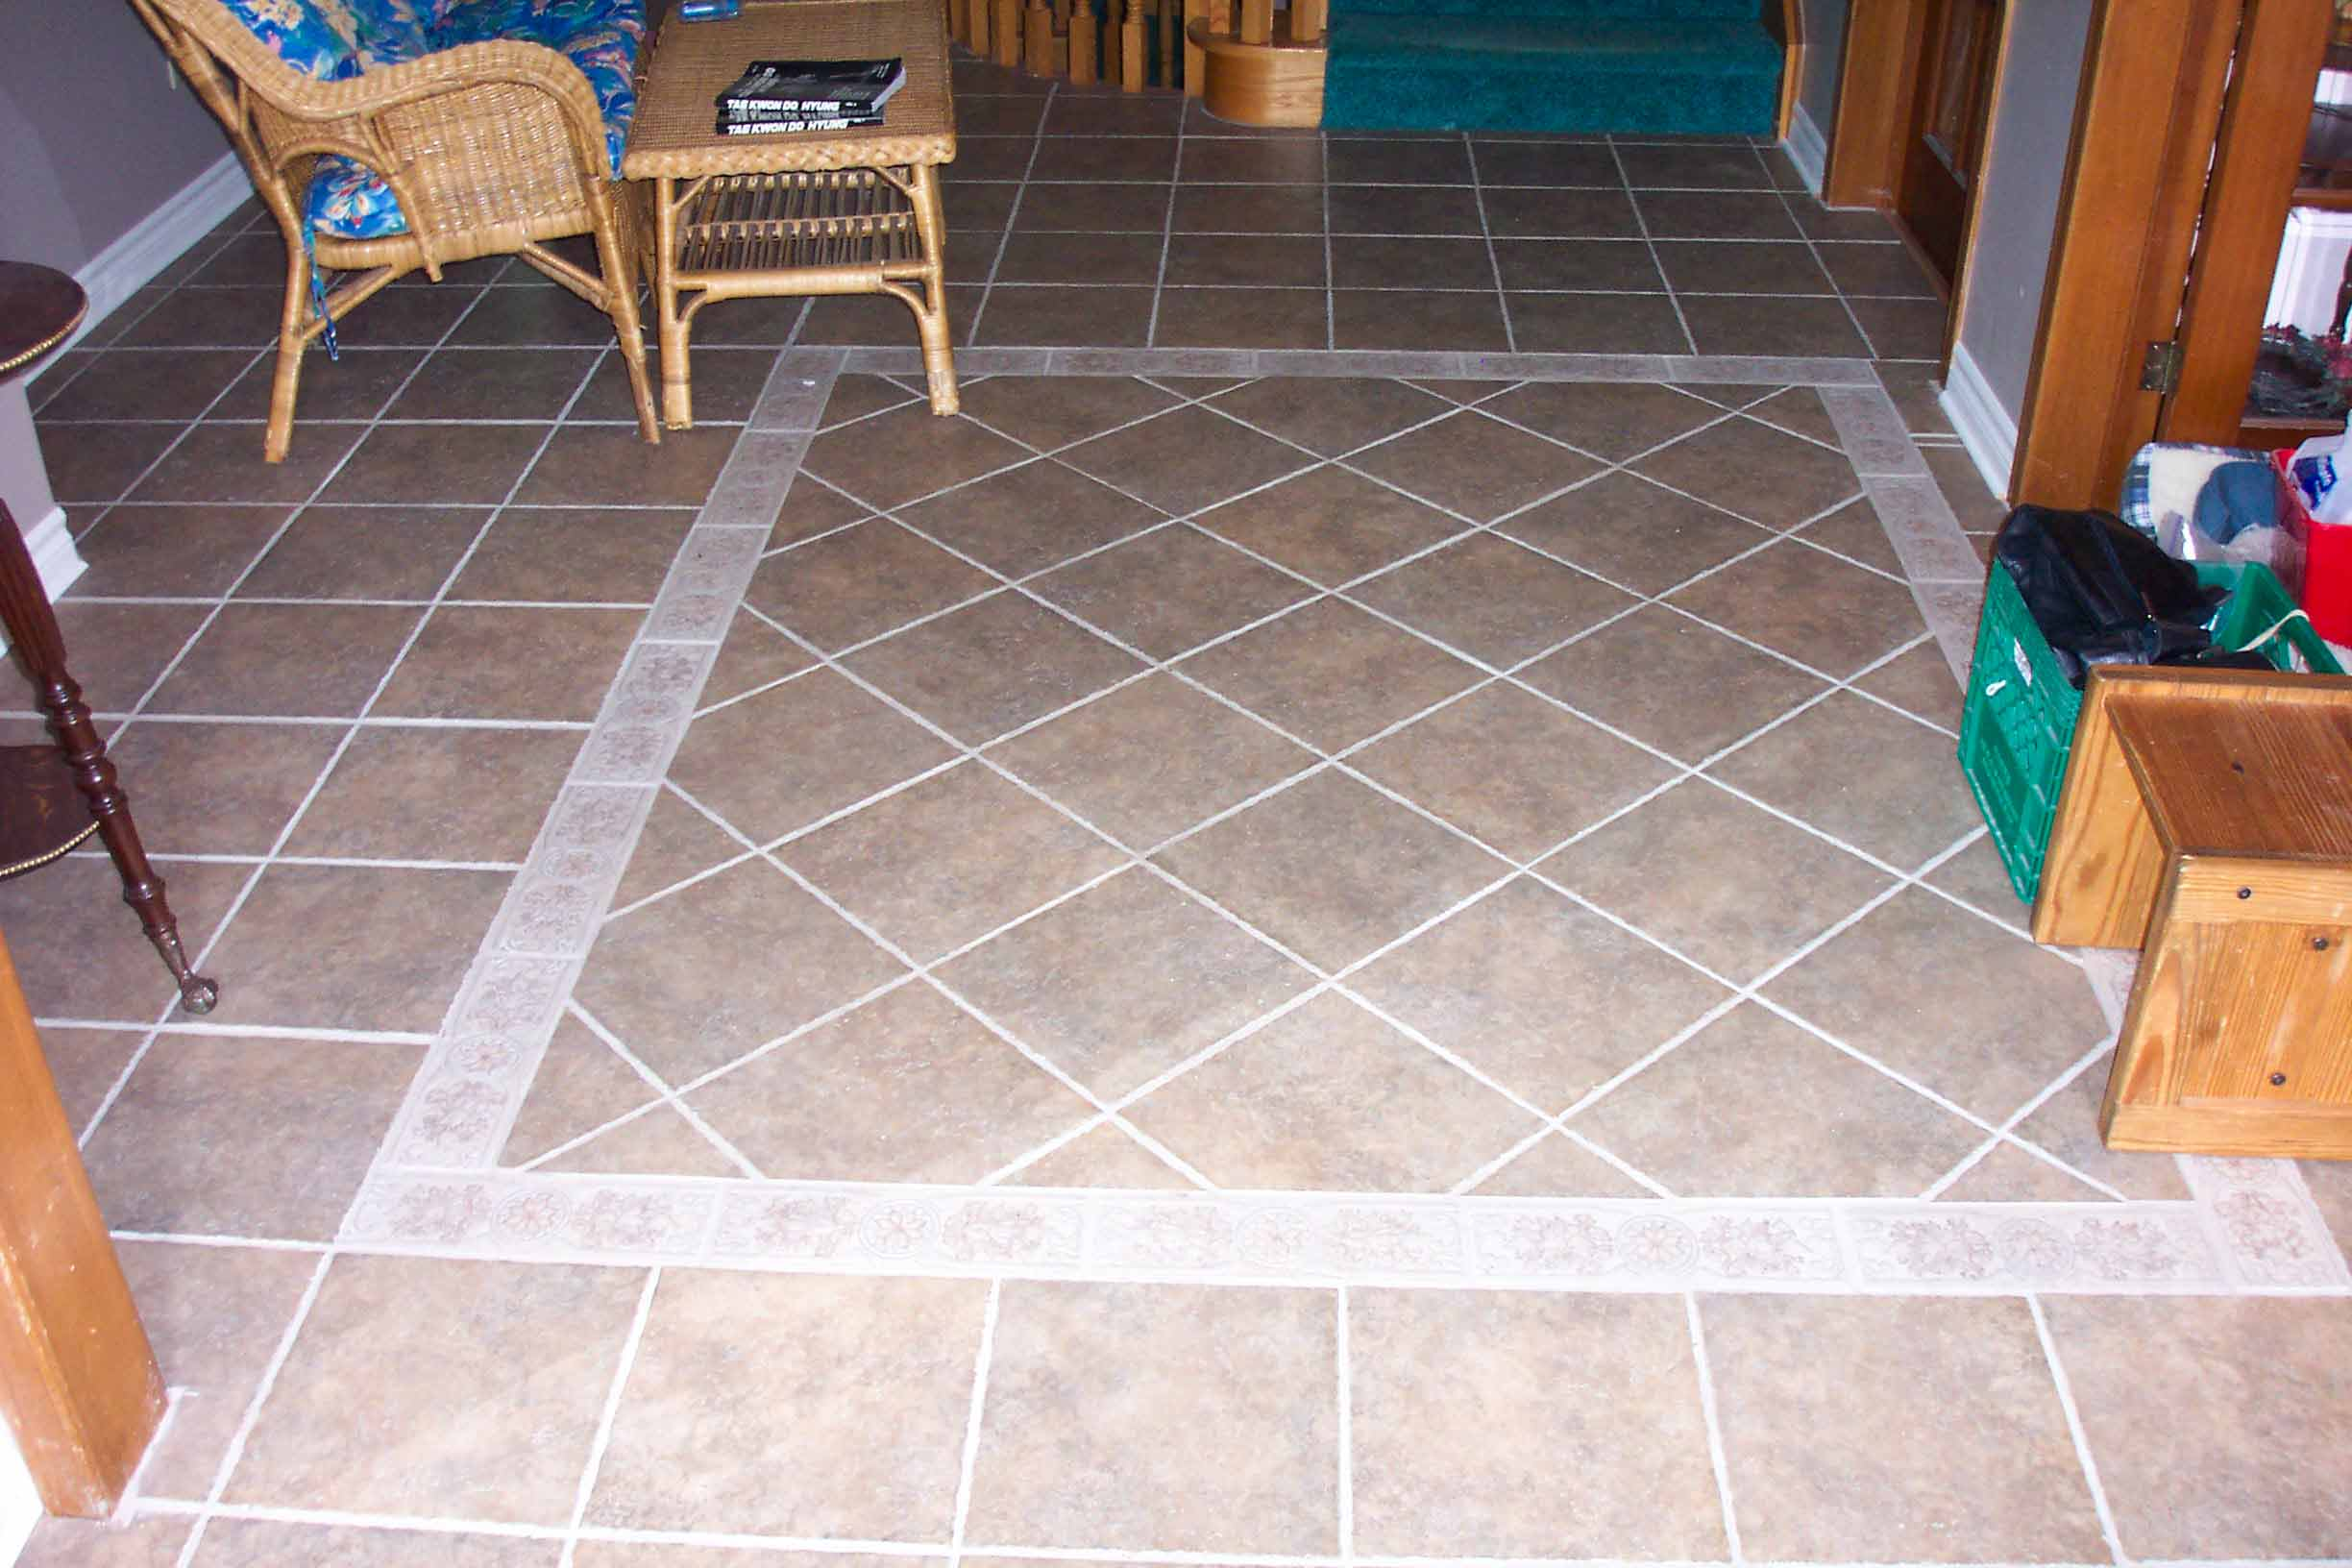 Remarkable Ceramic Tile Floor Designs 2448 x 1632 · 189 kB · jpeg